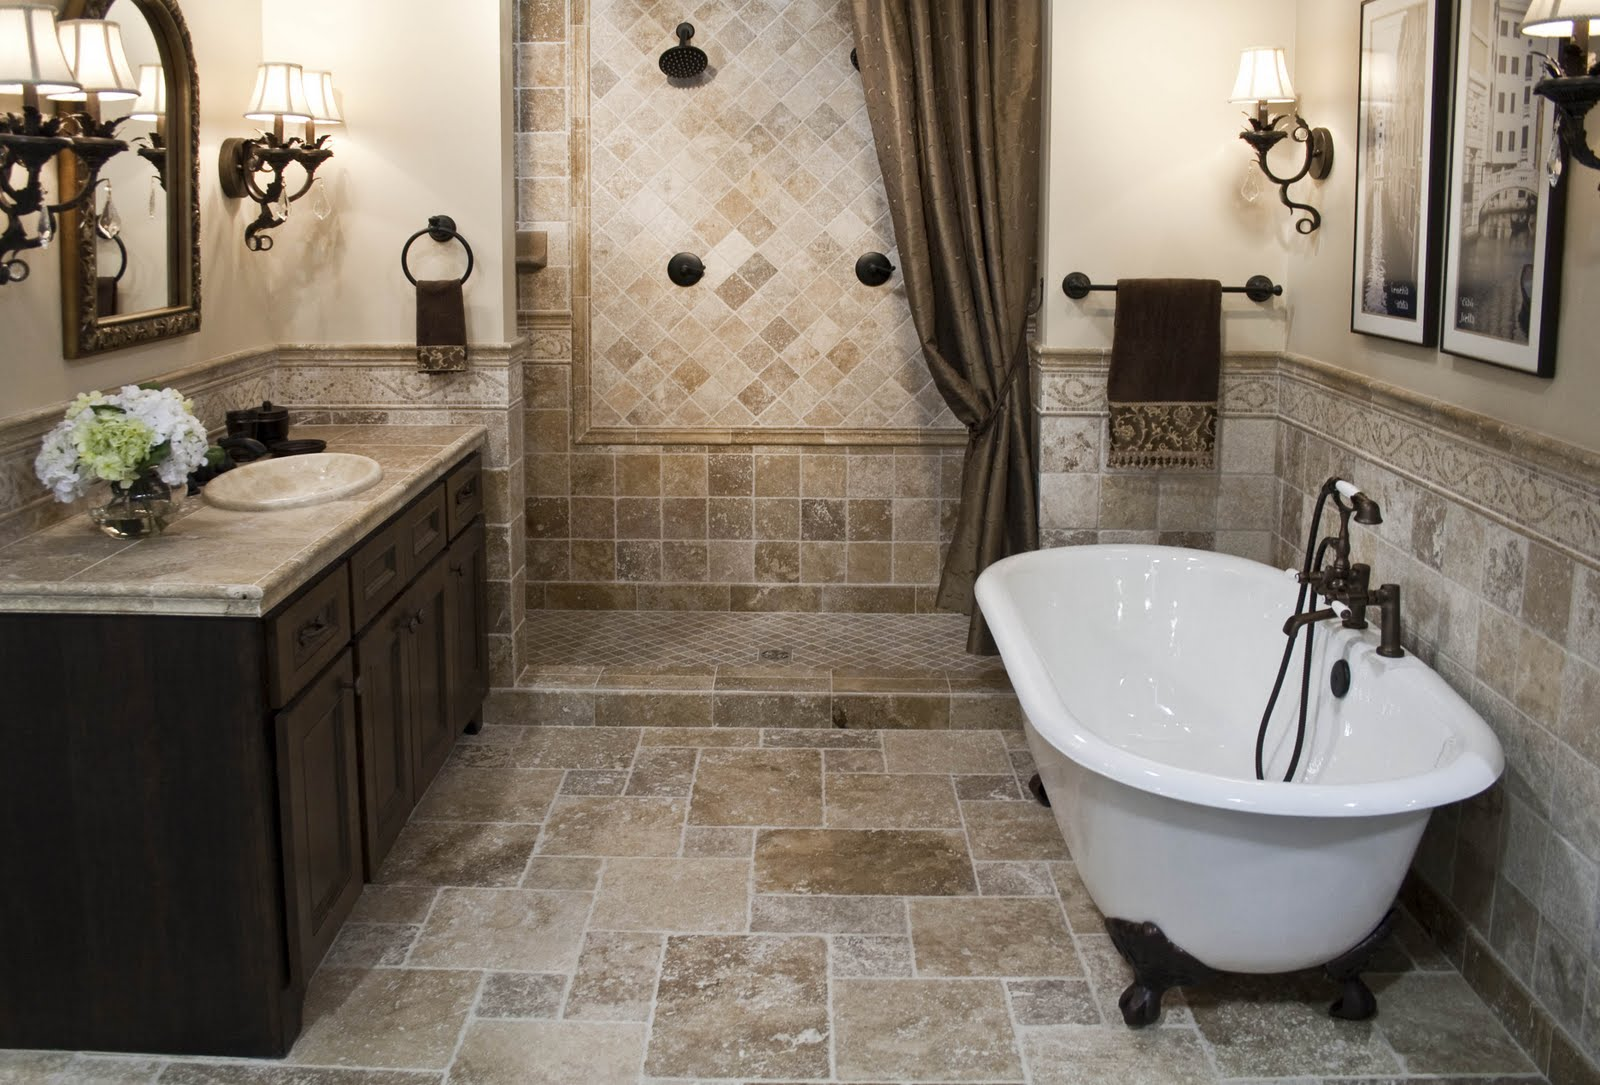 Bathroom Remodeling Katy bathroom remodels | katy construction & remodeling